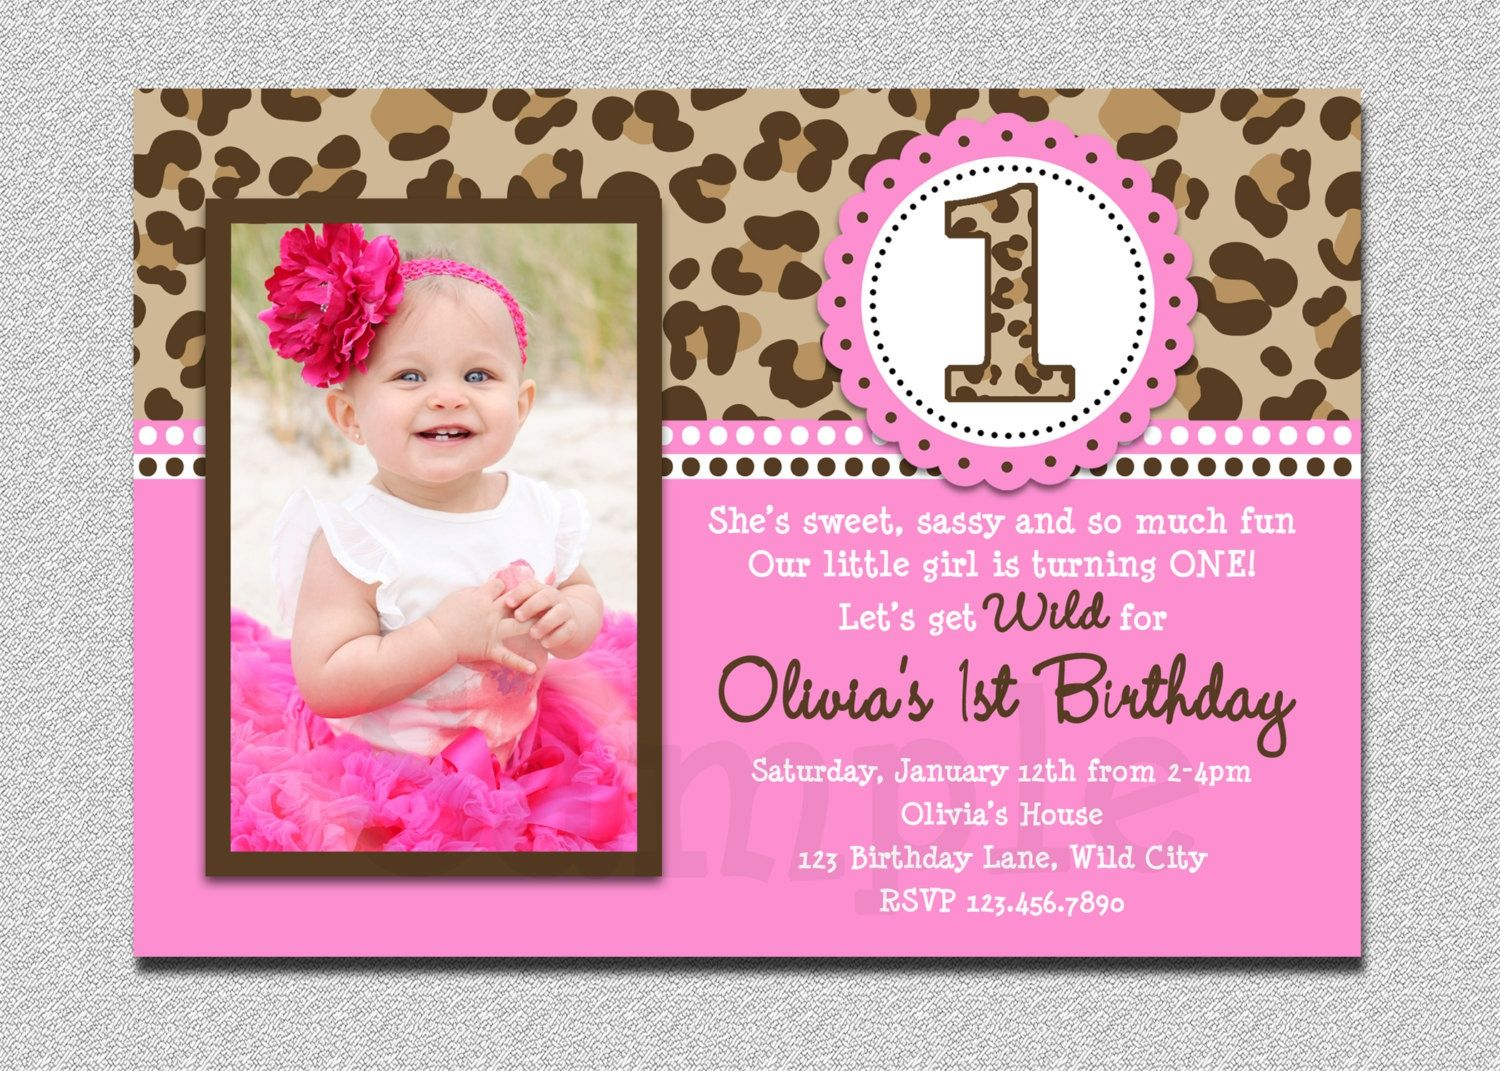 1st Birthday Invitations Girl Templates Free Cloudinvitation Com